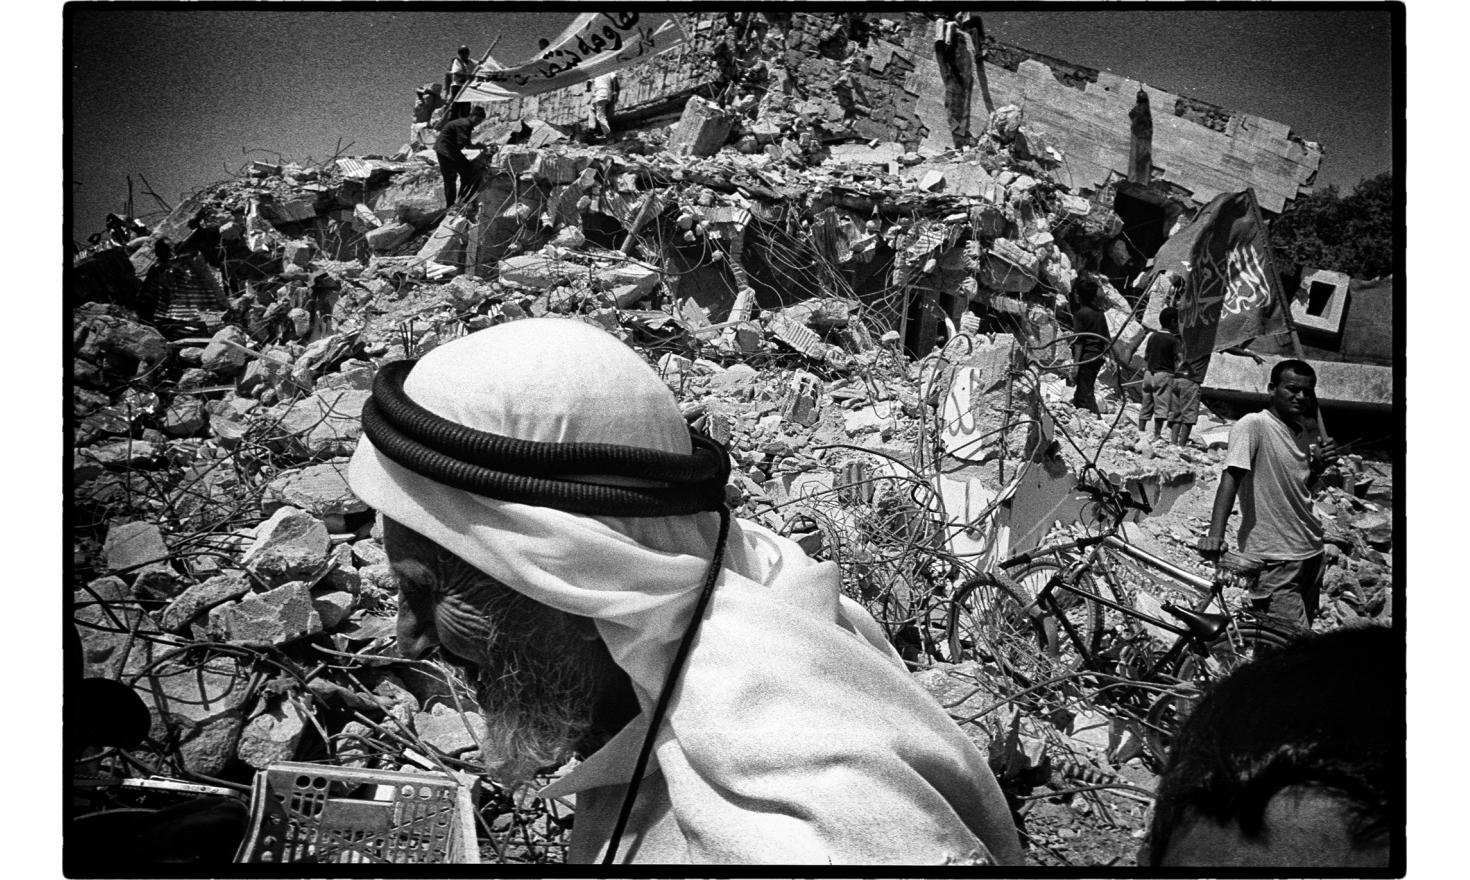 After the departure of the Israeli from Gaza, The Hamas is moving inside the former settlement of kfar Darom. Gaza, september 2005.